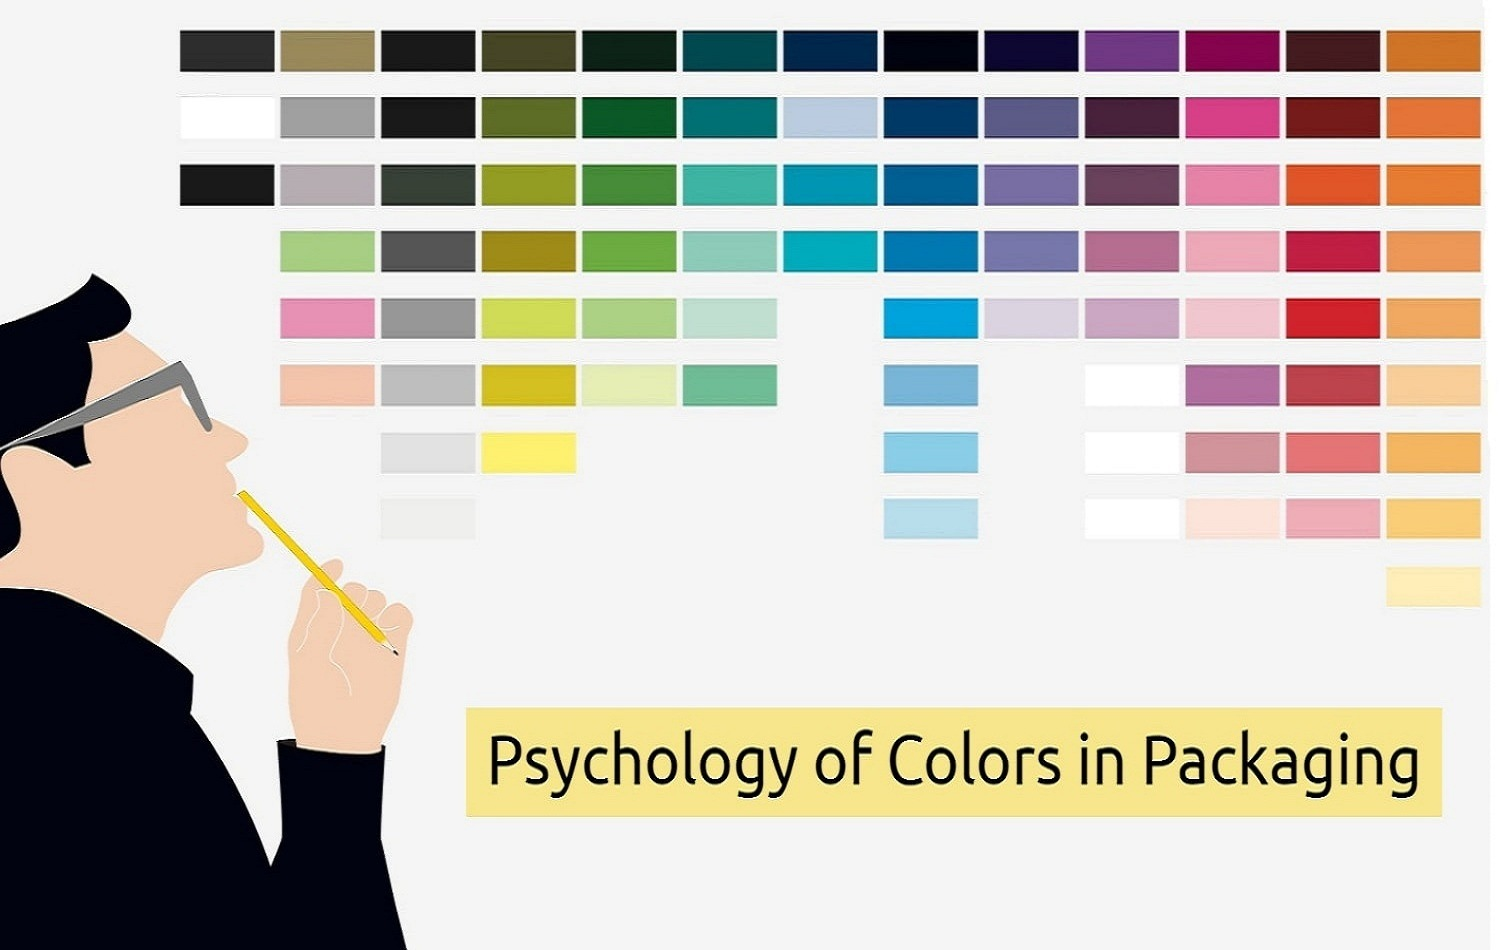 Psychology of Colors in Packaging